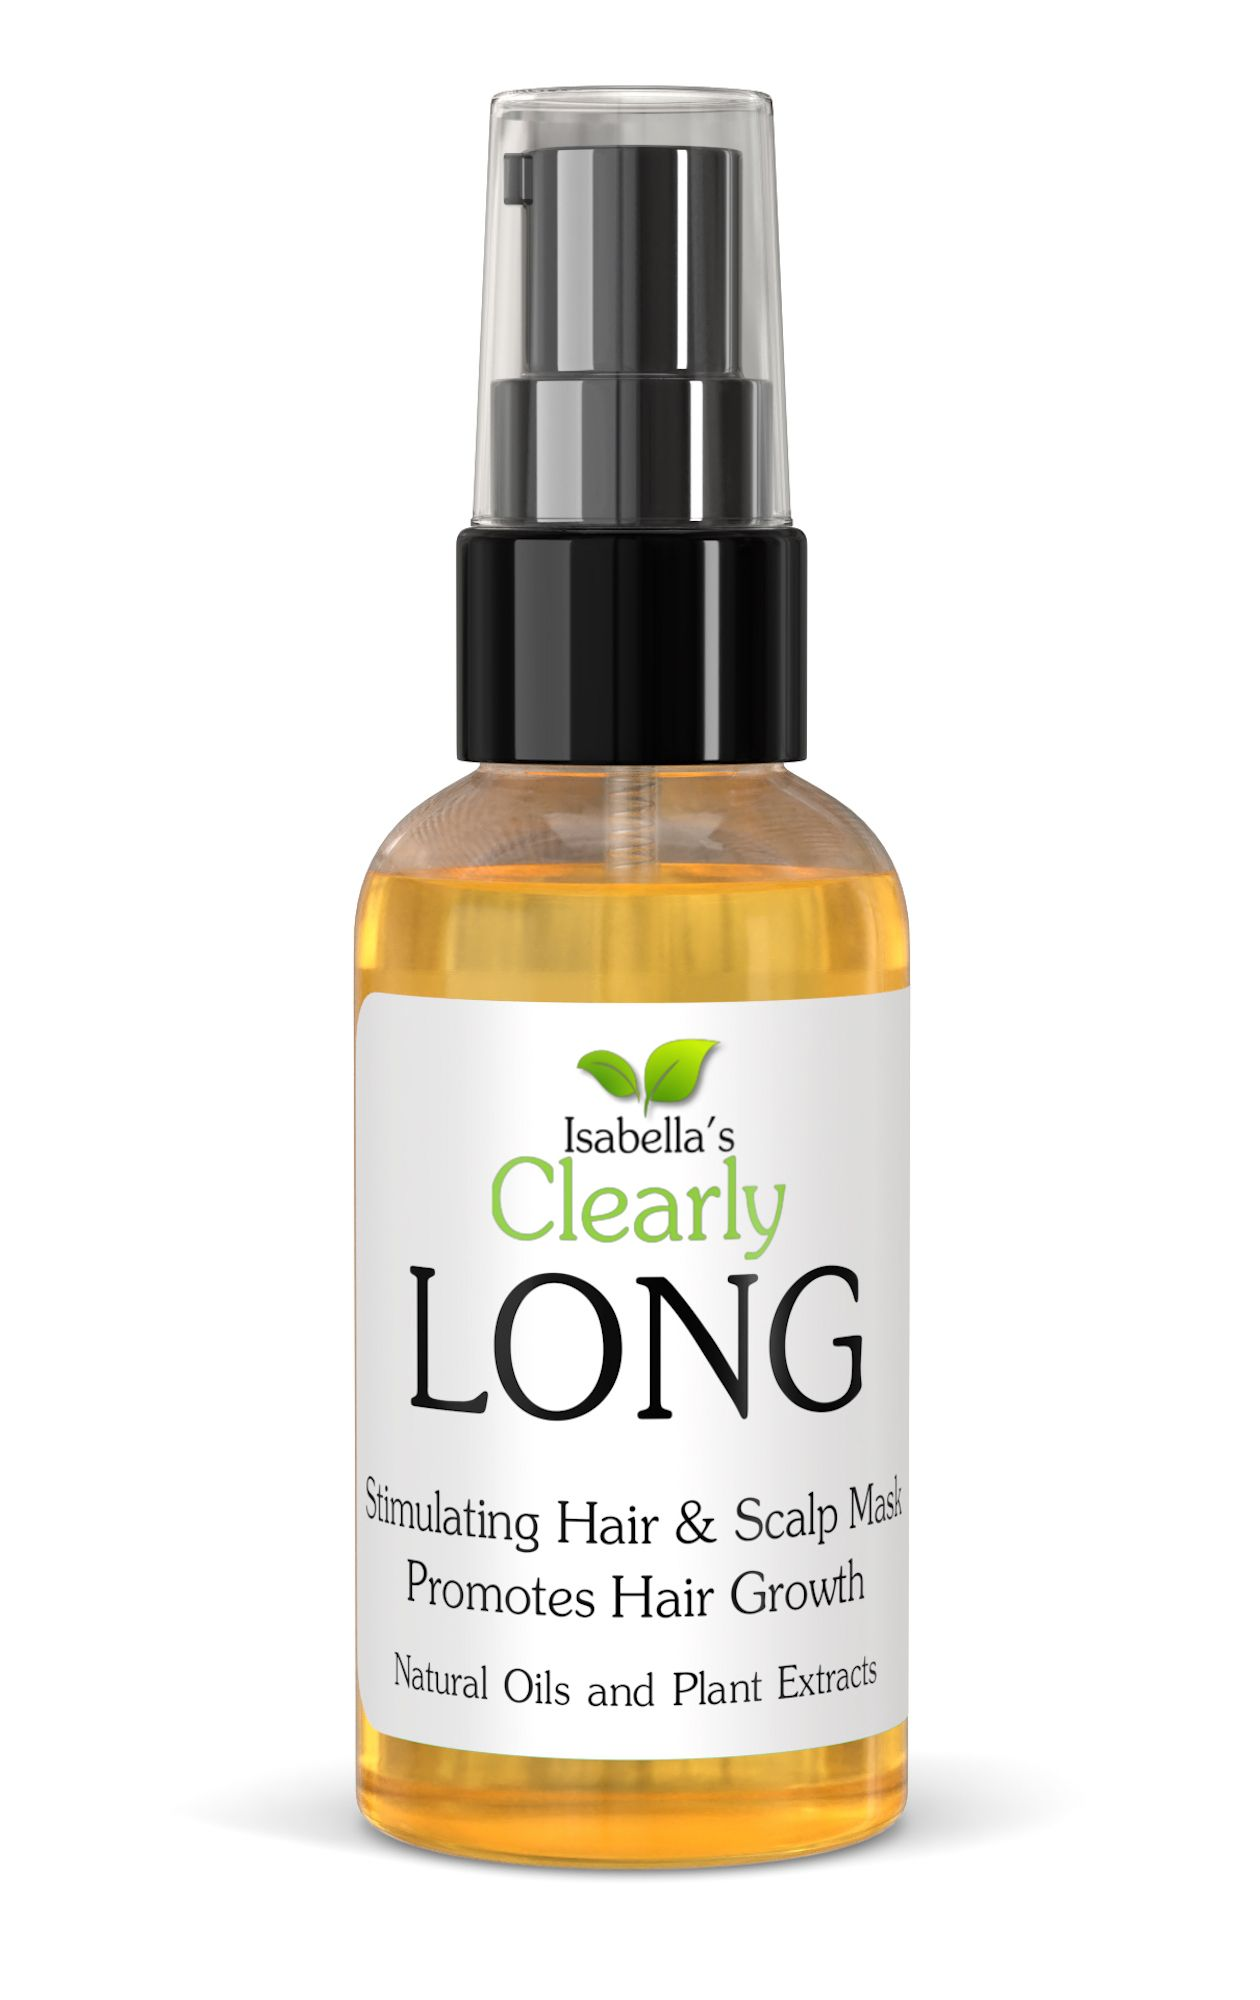 Natural Hair Treatment for Healthy Hair Growth | Plant Based, Vegan, Organic — Isabella's Clearly